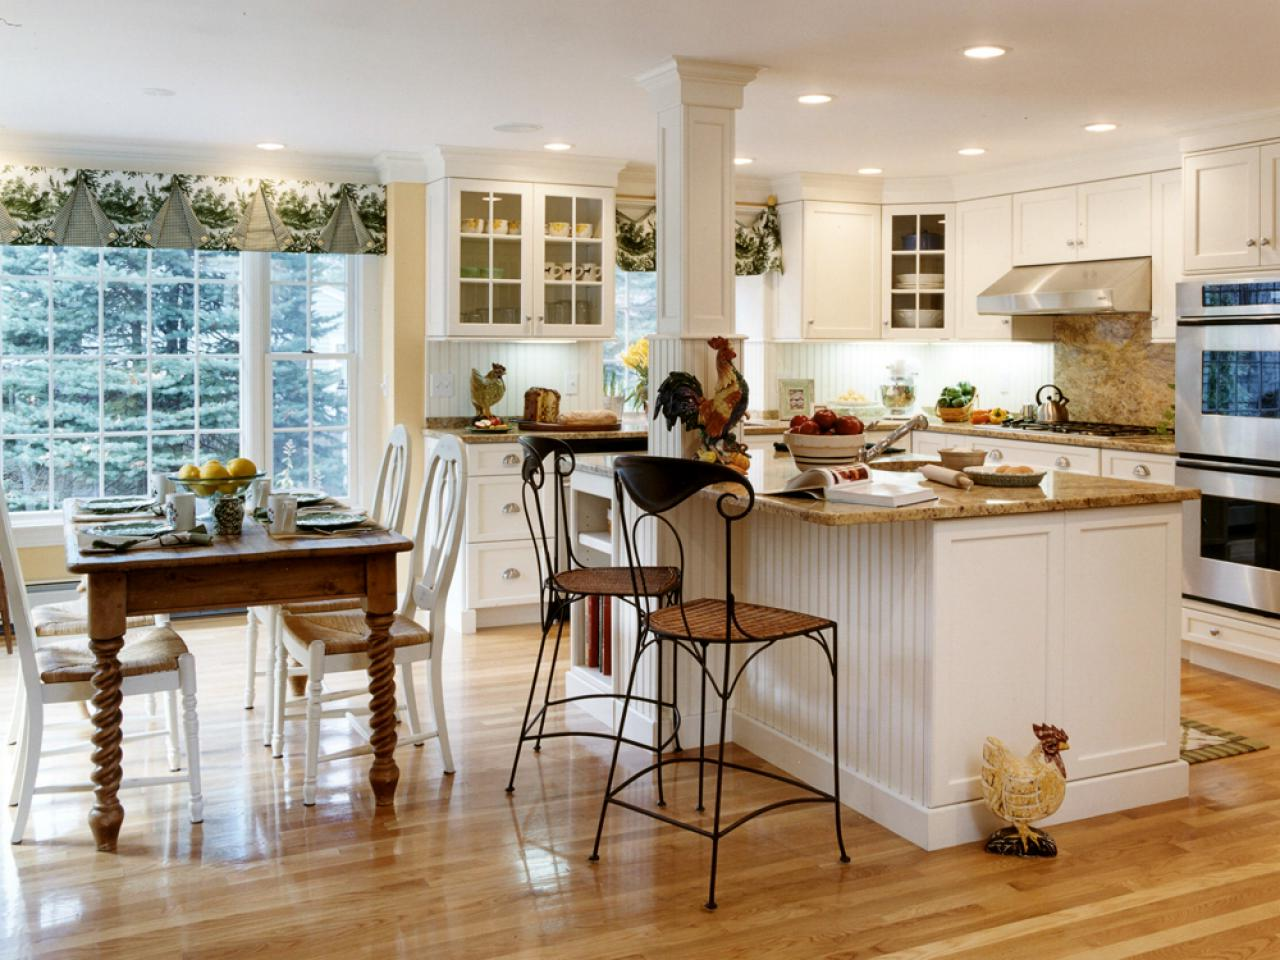 ... Kitchen Design Images U2013 Kitchen In Country Style With Wooden Floors,  Wooden Table, ...